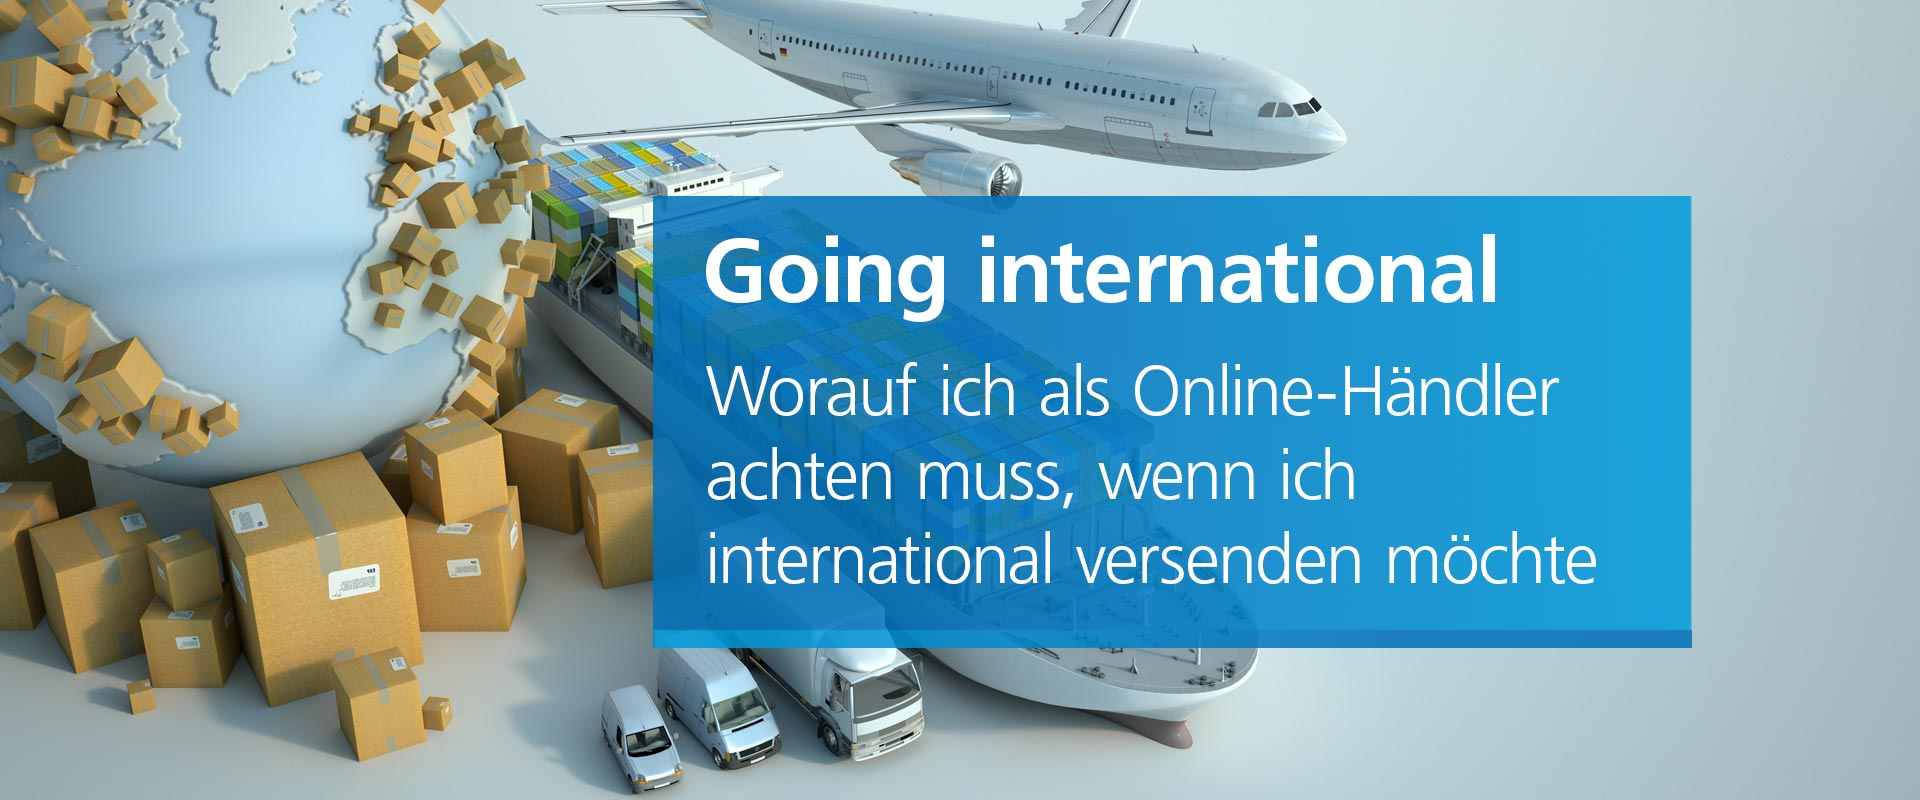 Webinar: Going international